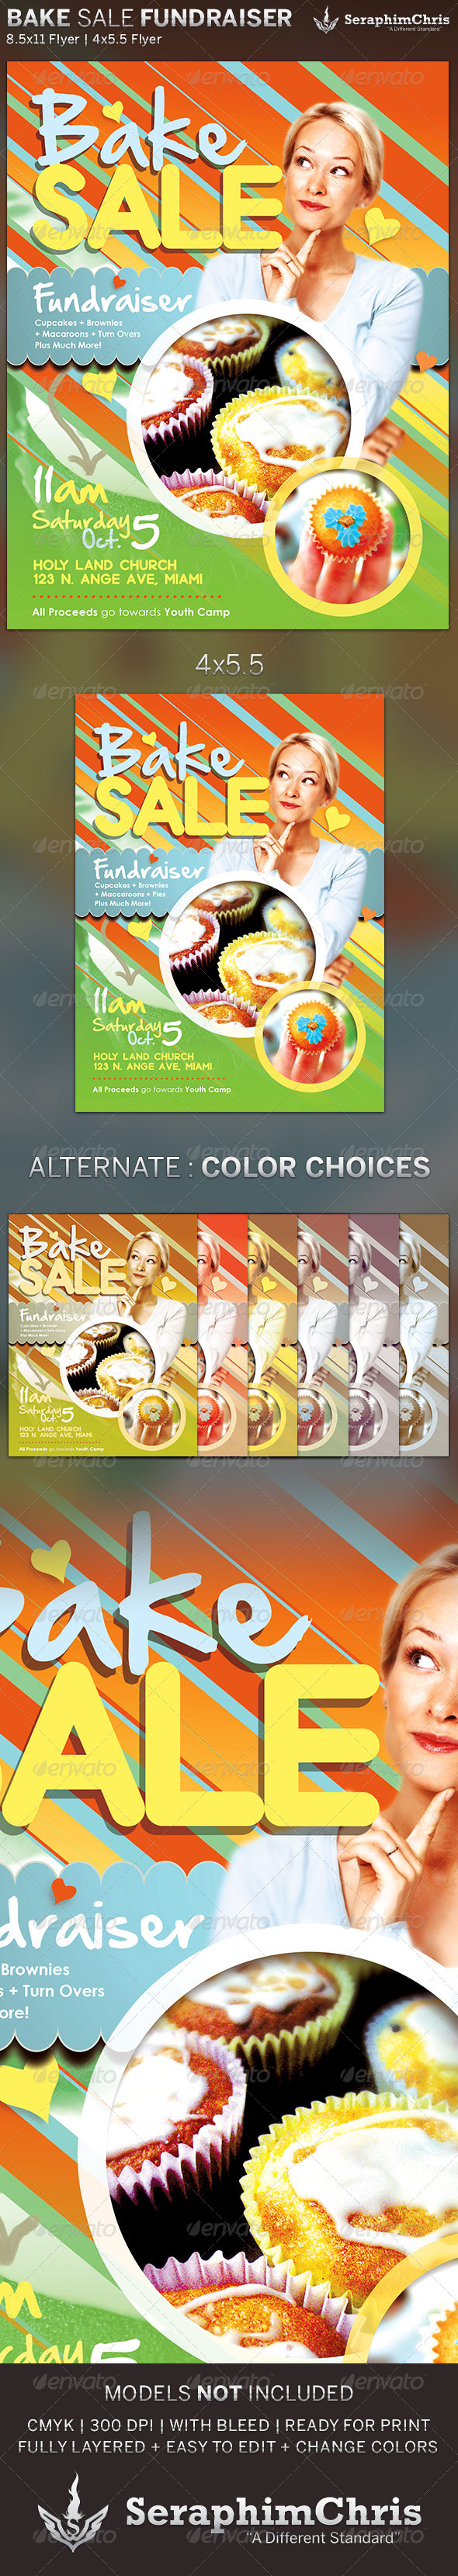 GraphicRiver Bake Sale Church Fundraiser Flyer Template 5596909